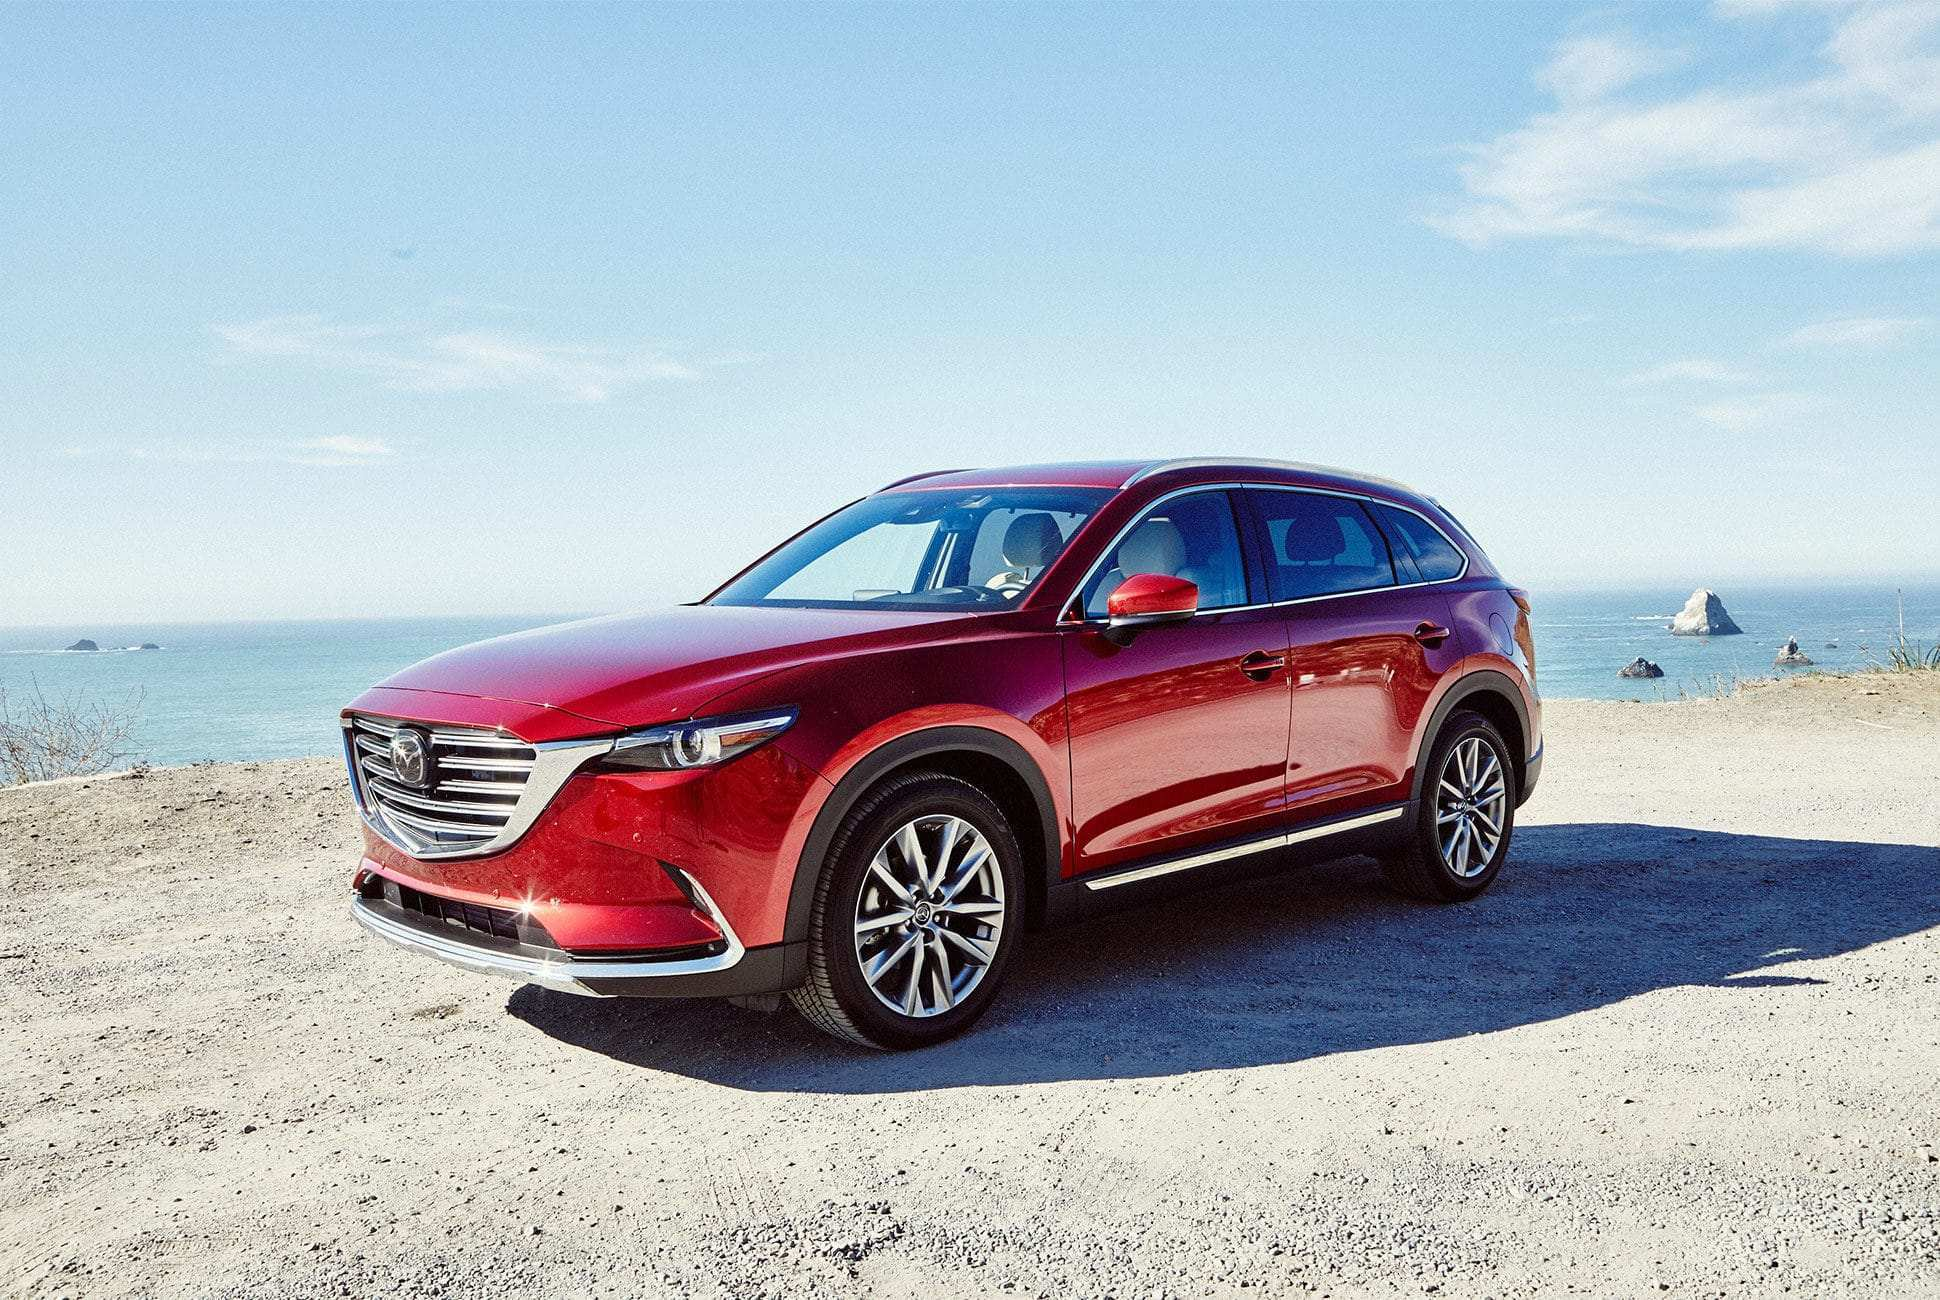 41 Concept of The Mazda X9 2019 Release Specs And Review Model by The Mazda X9 2019 Release Specs And Review